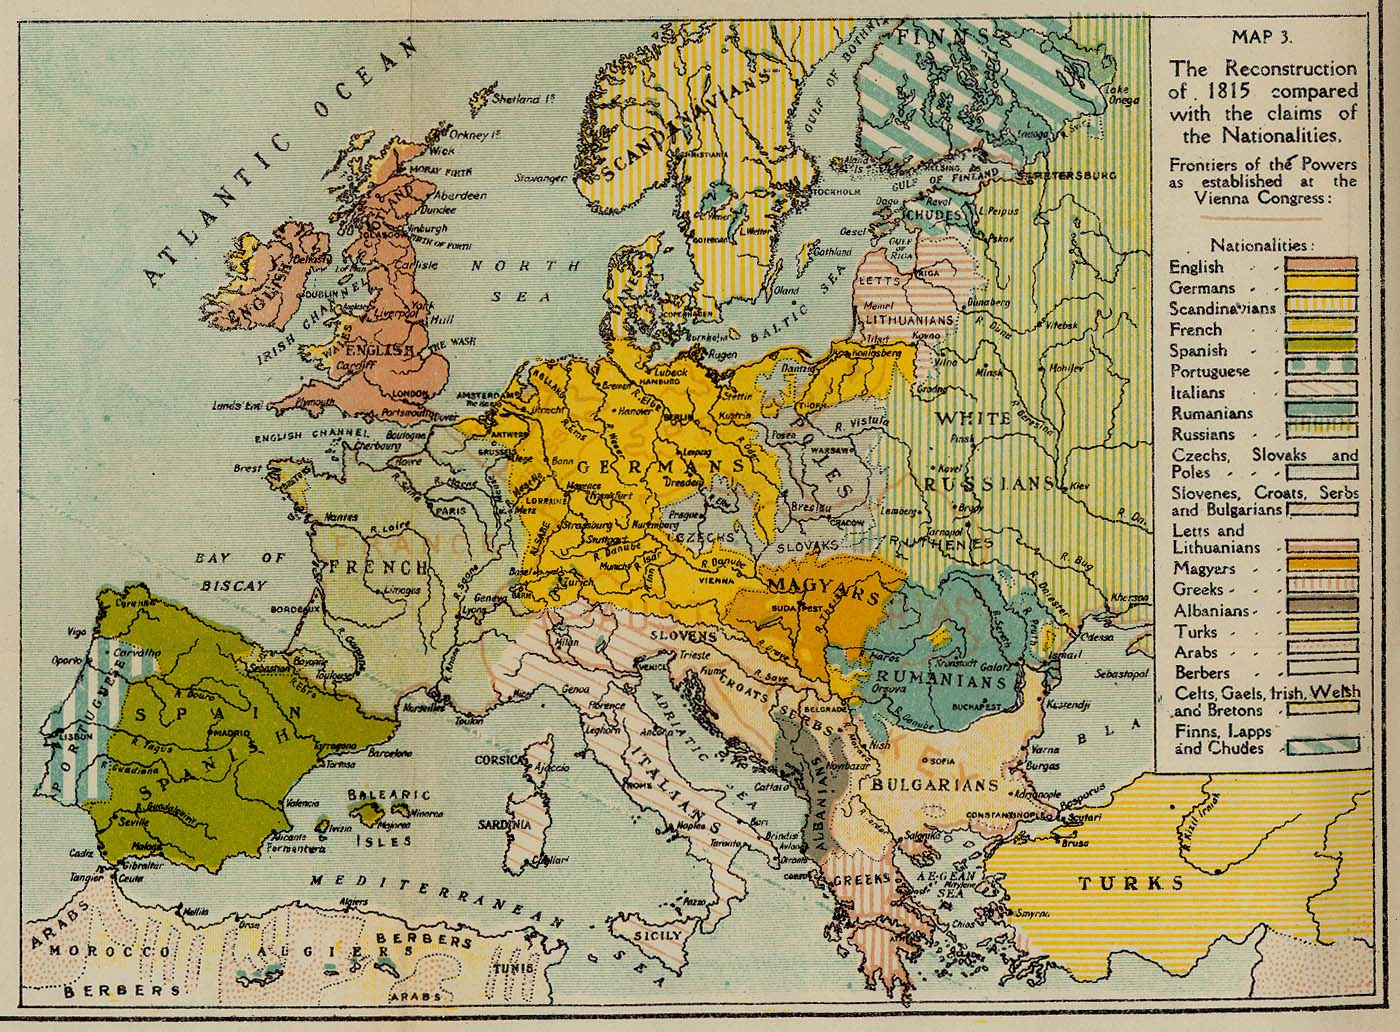 Grand strategy maps nationalities and states in europe 1815 gumiabroncs Choice Image